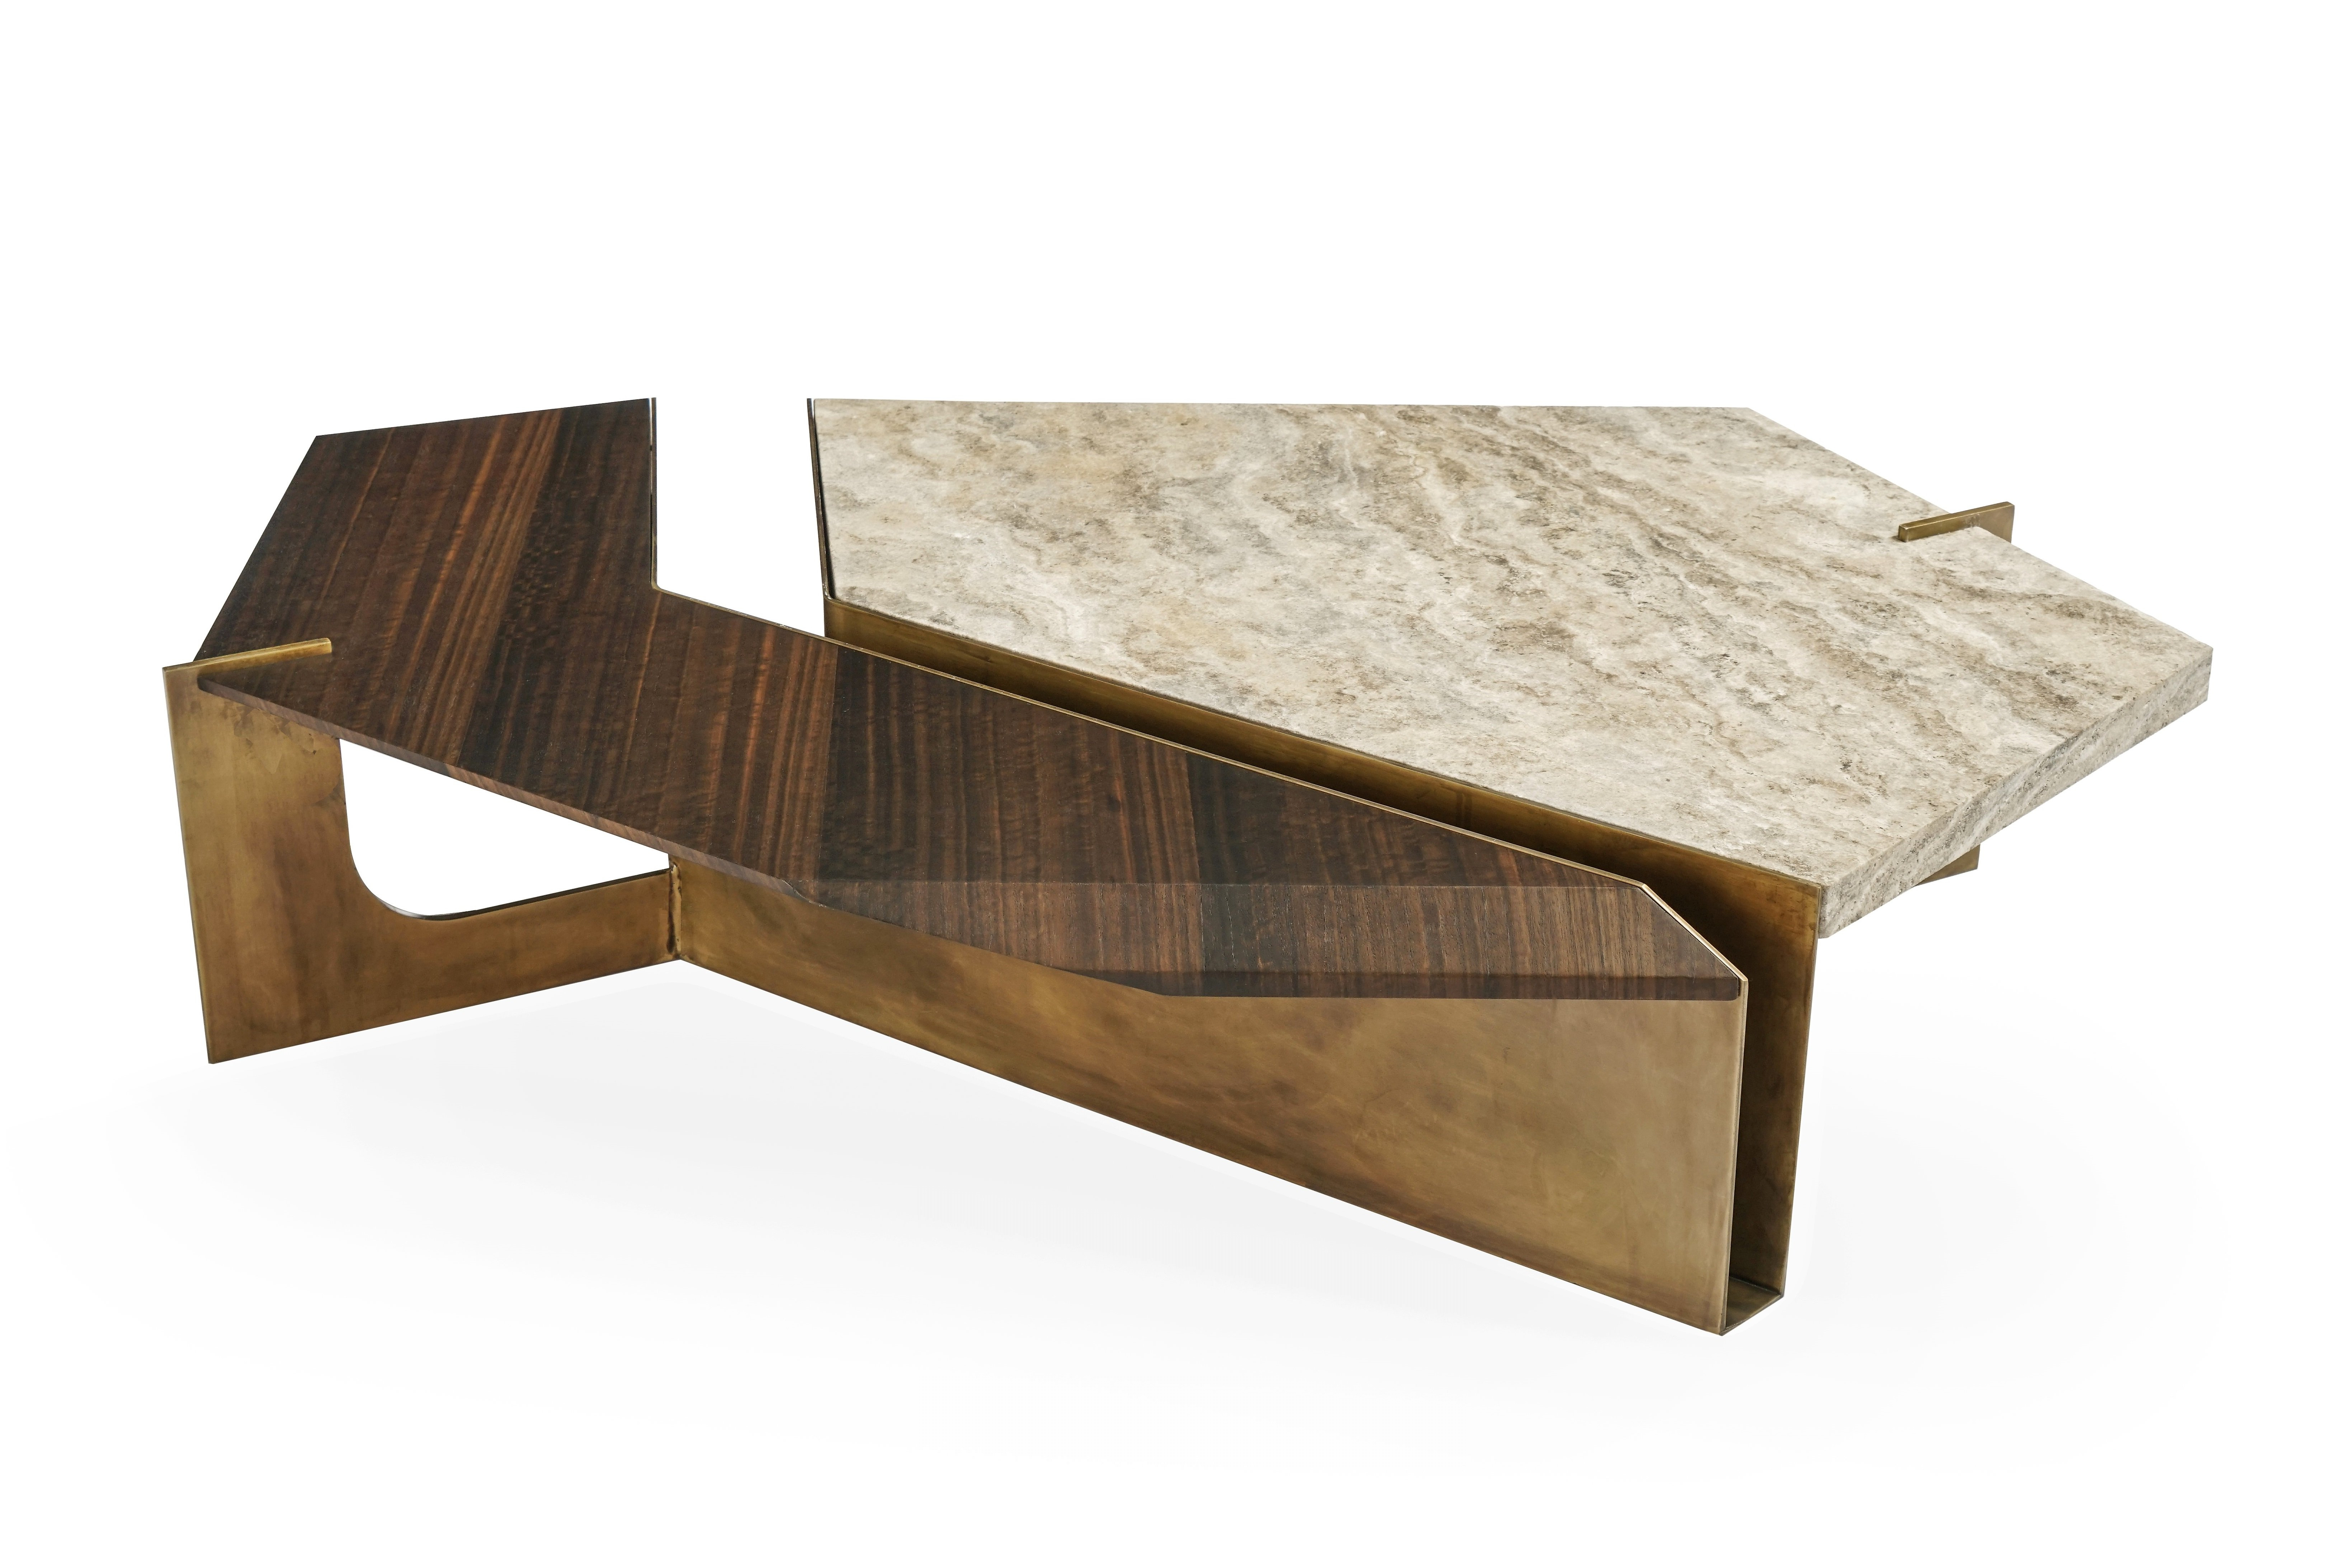 Newest Stratus Cocktail Tables With Regard To Stratus Coffee Table, Contemporary Centre Table In Aged Brass And (Gallery 16 of 20)